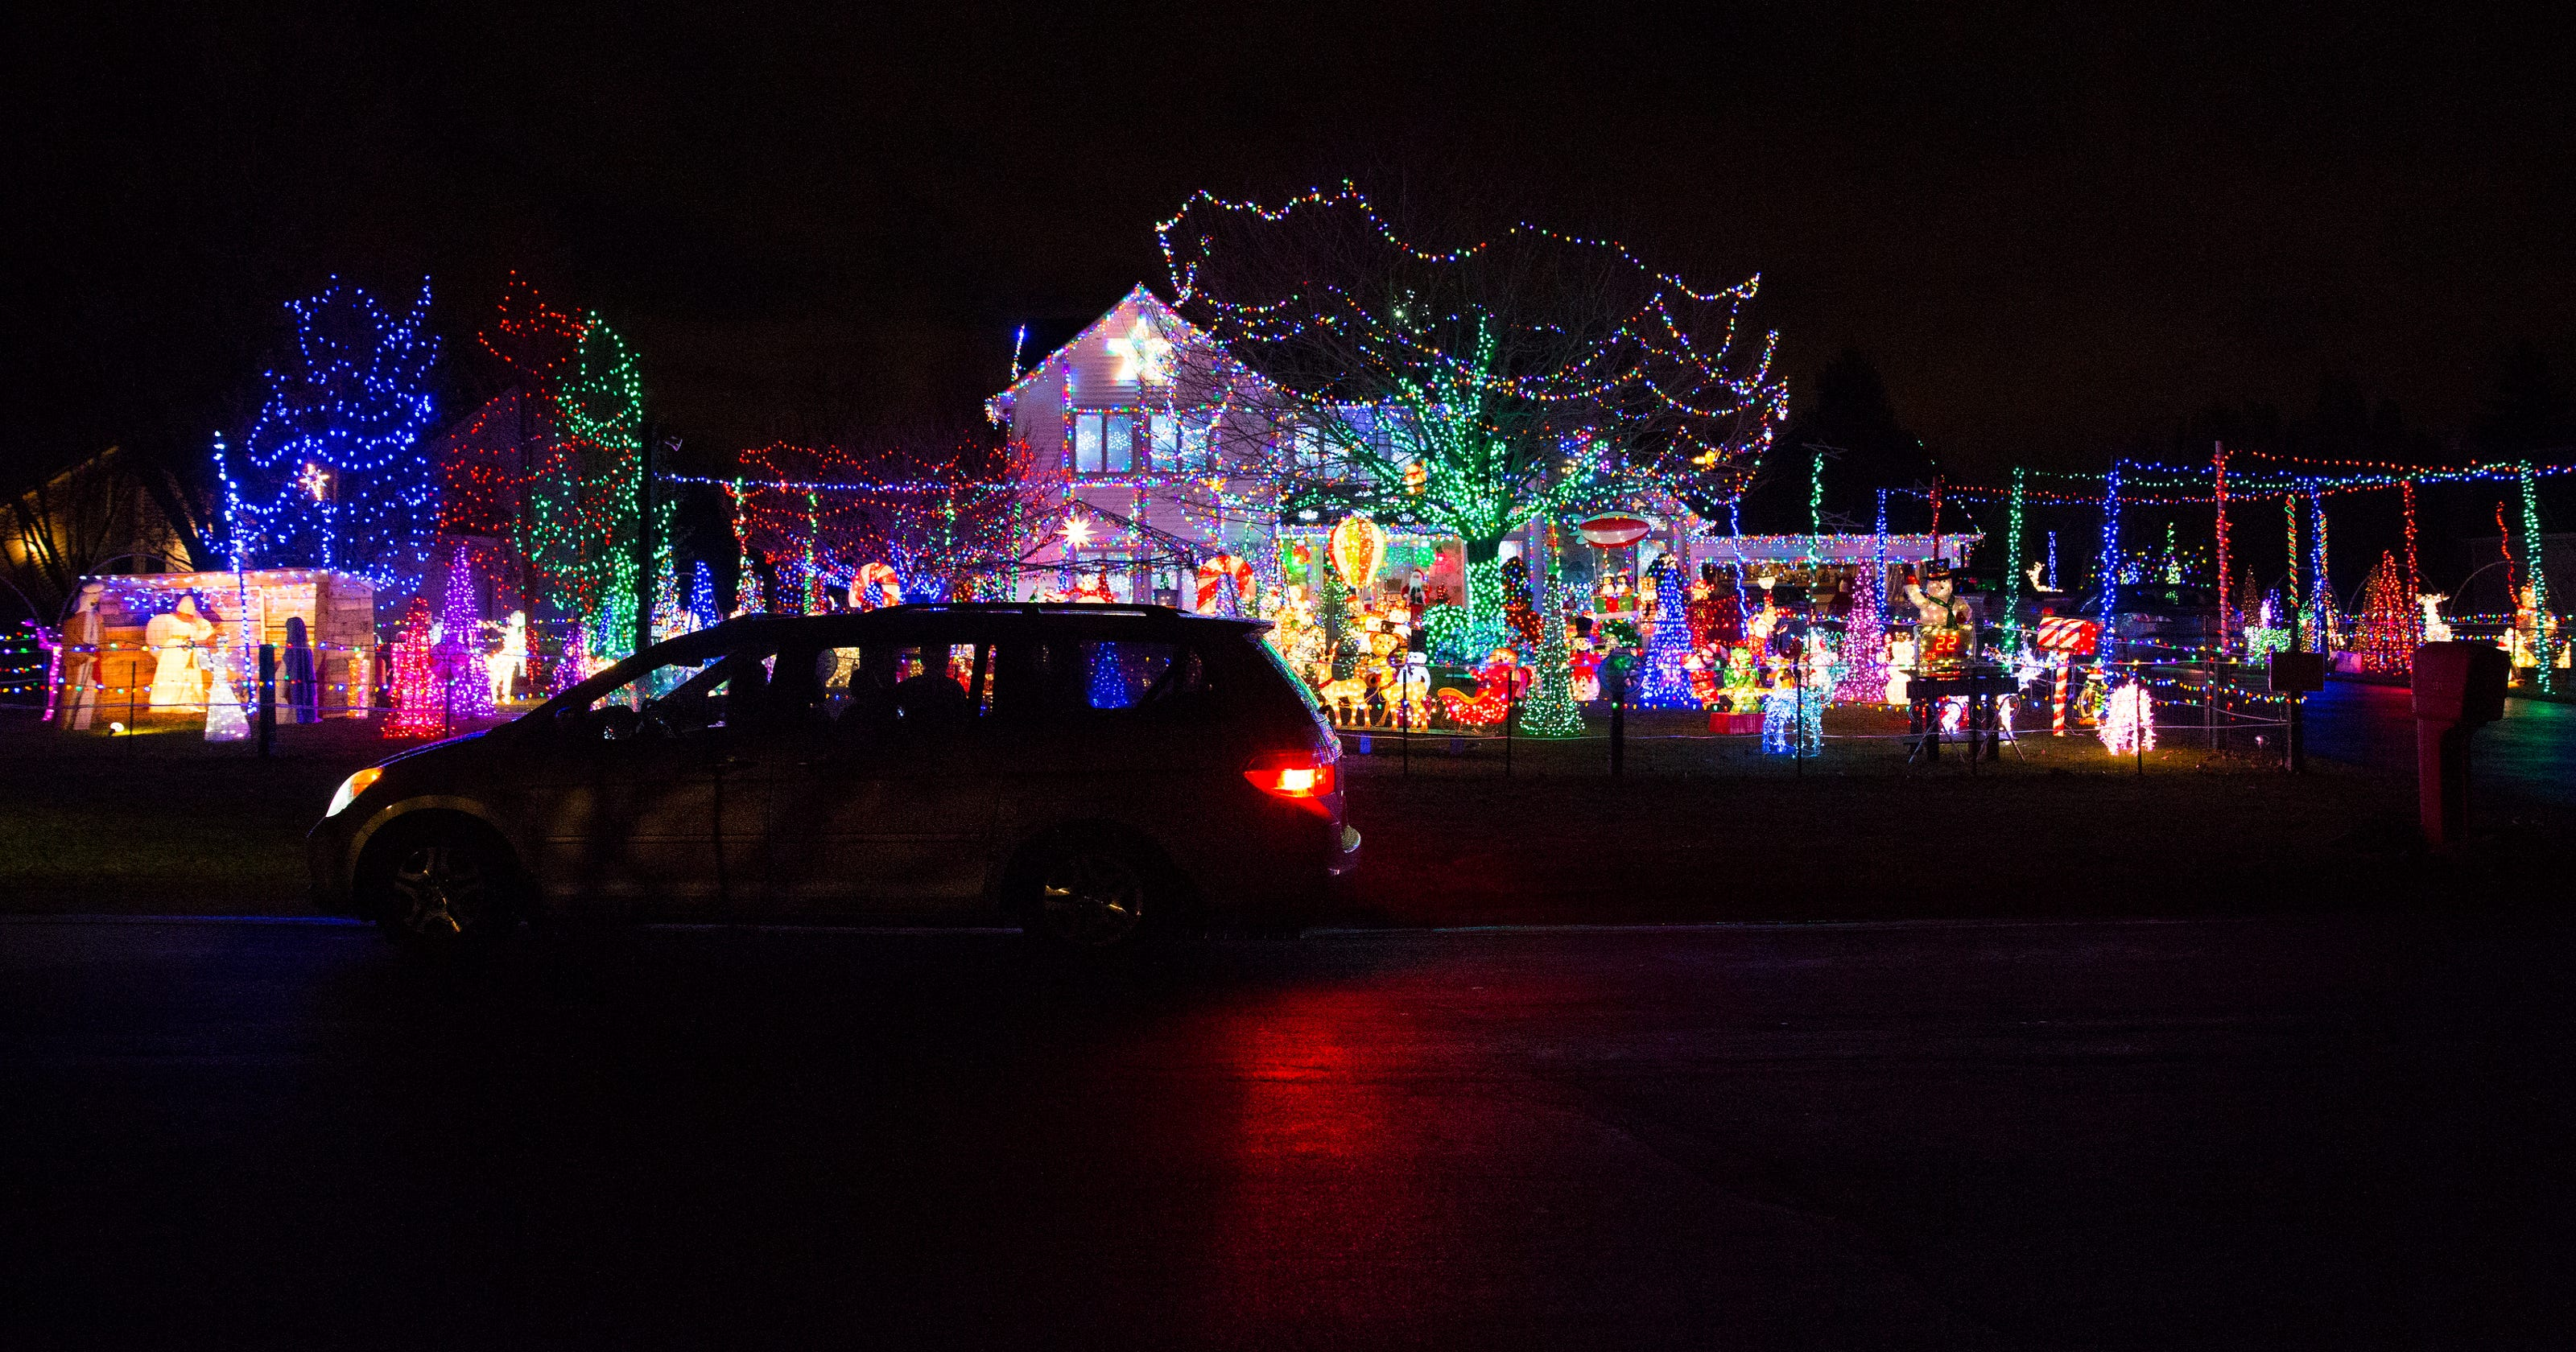 Christmas Light Displays.10 Favorite Spots To View Christmas Light Displays